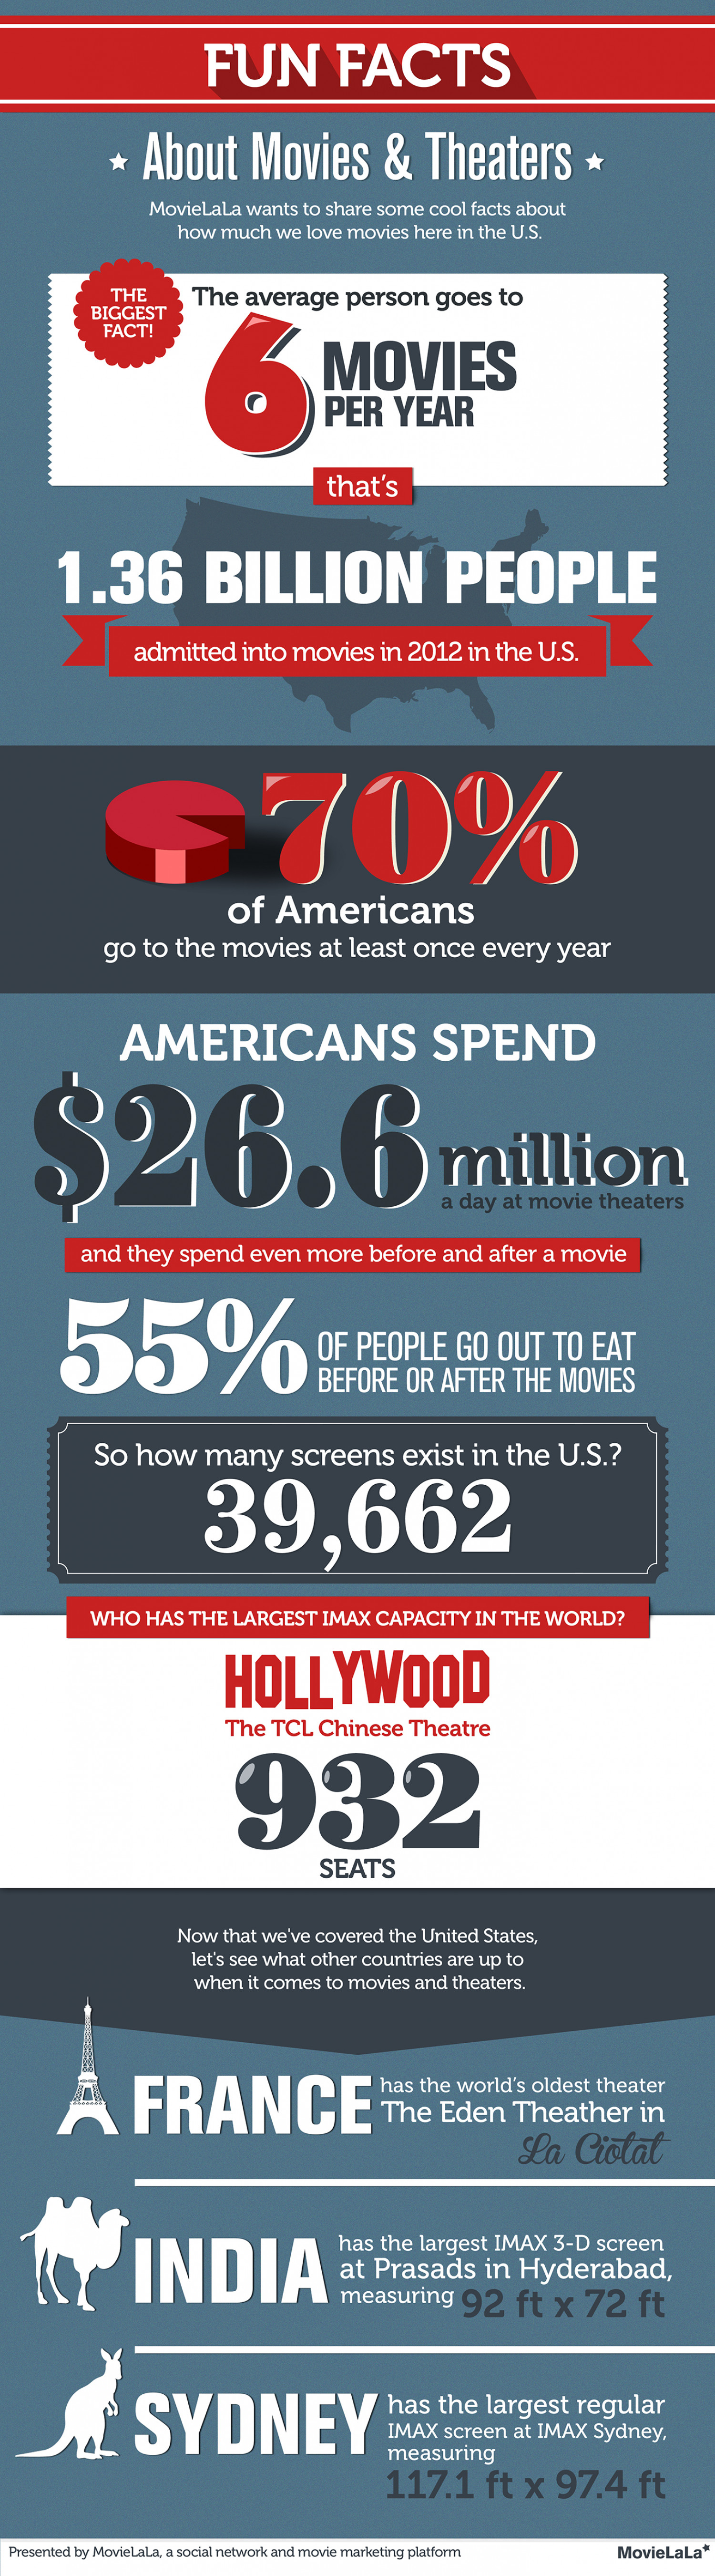 Fun Facts About Movies & Theaters Infographic